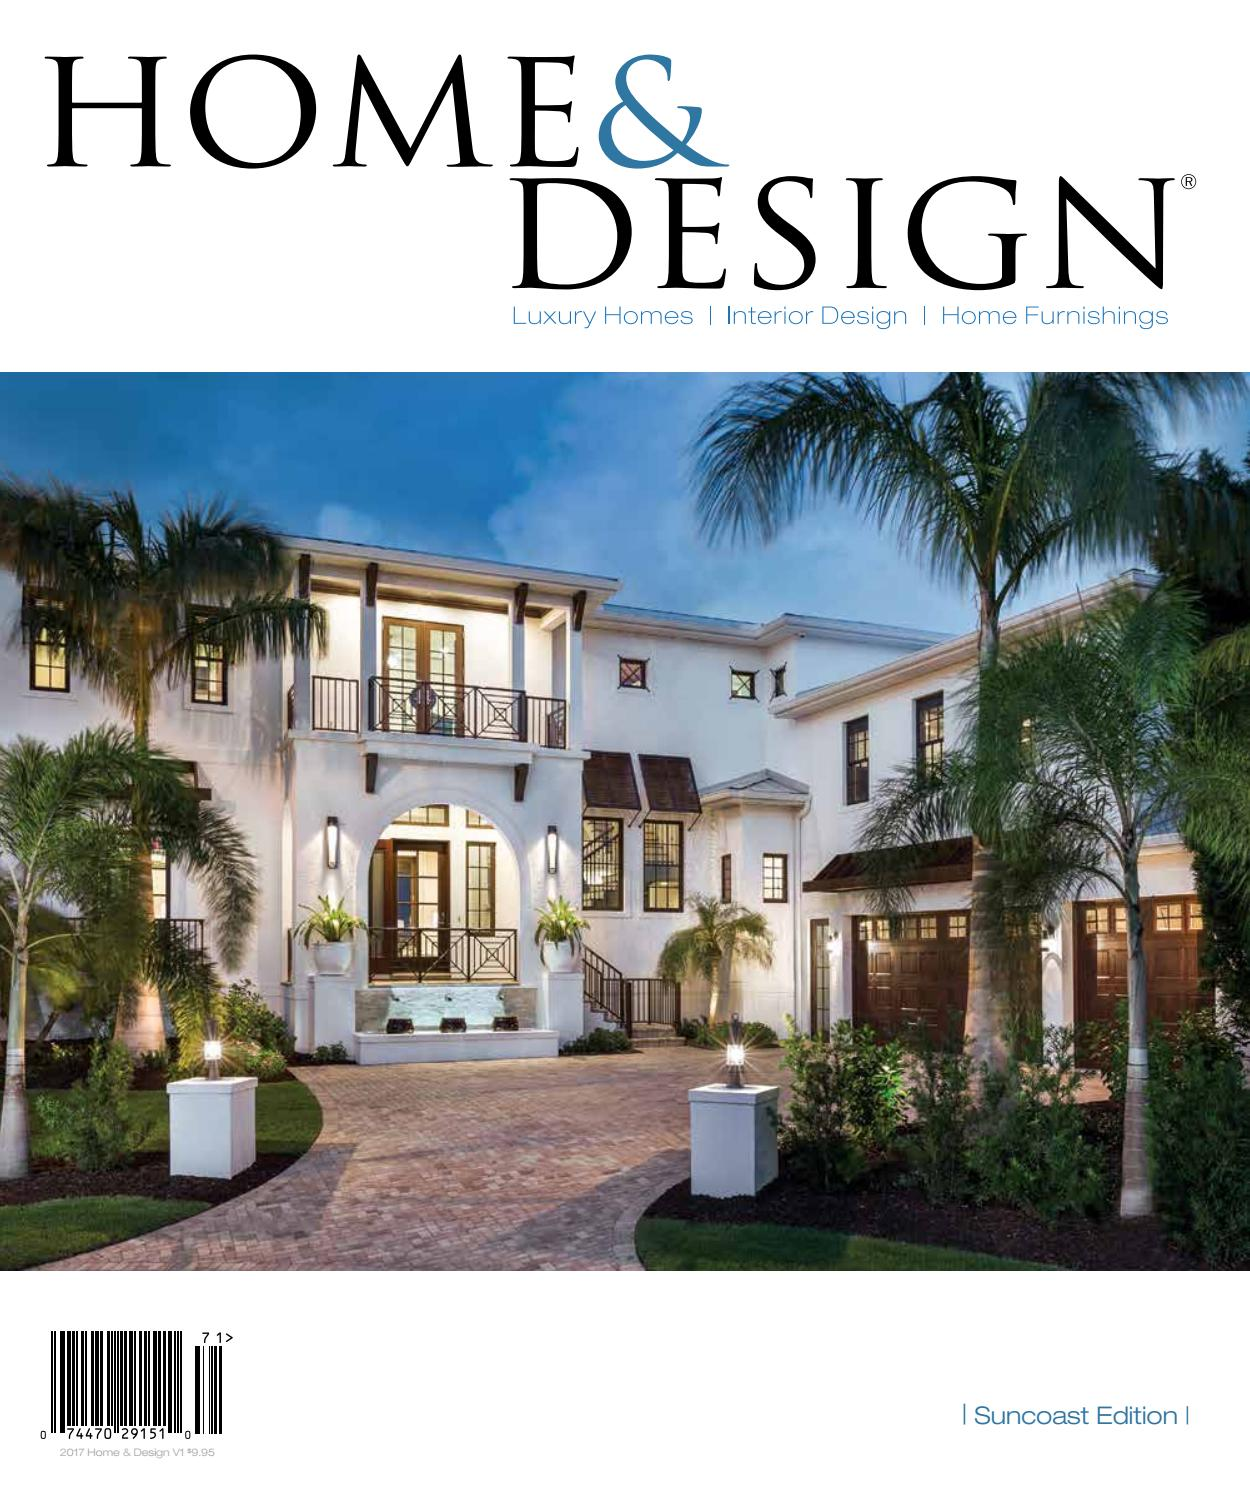 home & design magazine | 2017 suncoast florida editionanthony